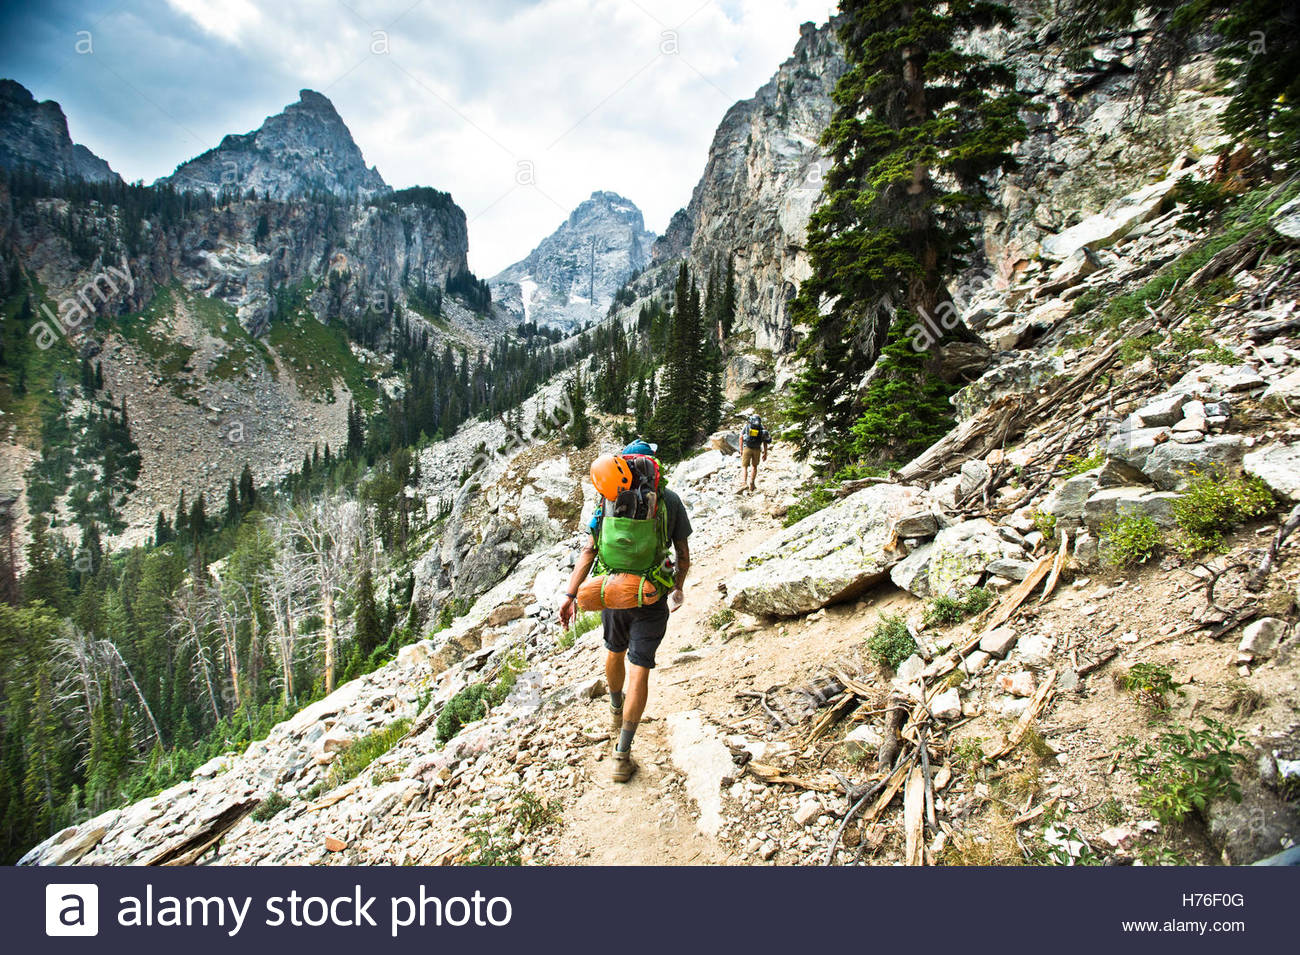 A backpacker going through rocky terrain. - Stock Image